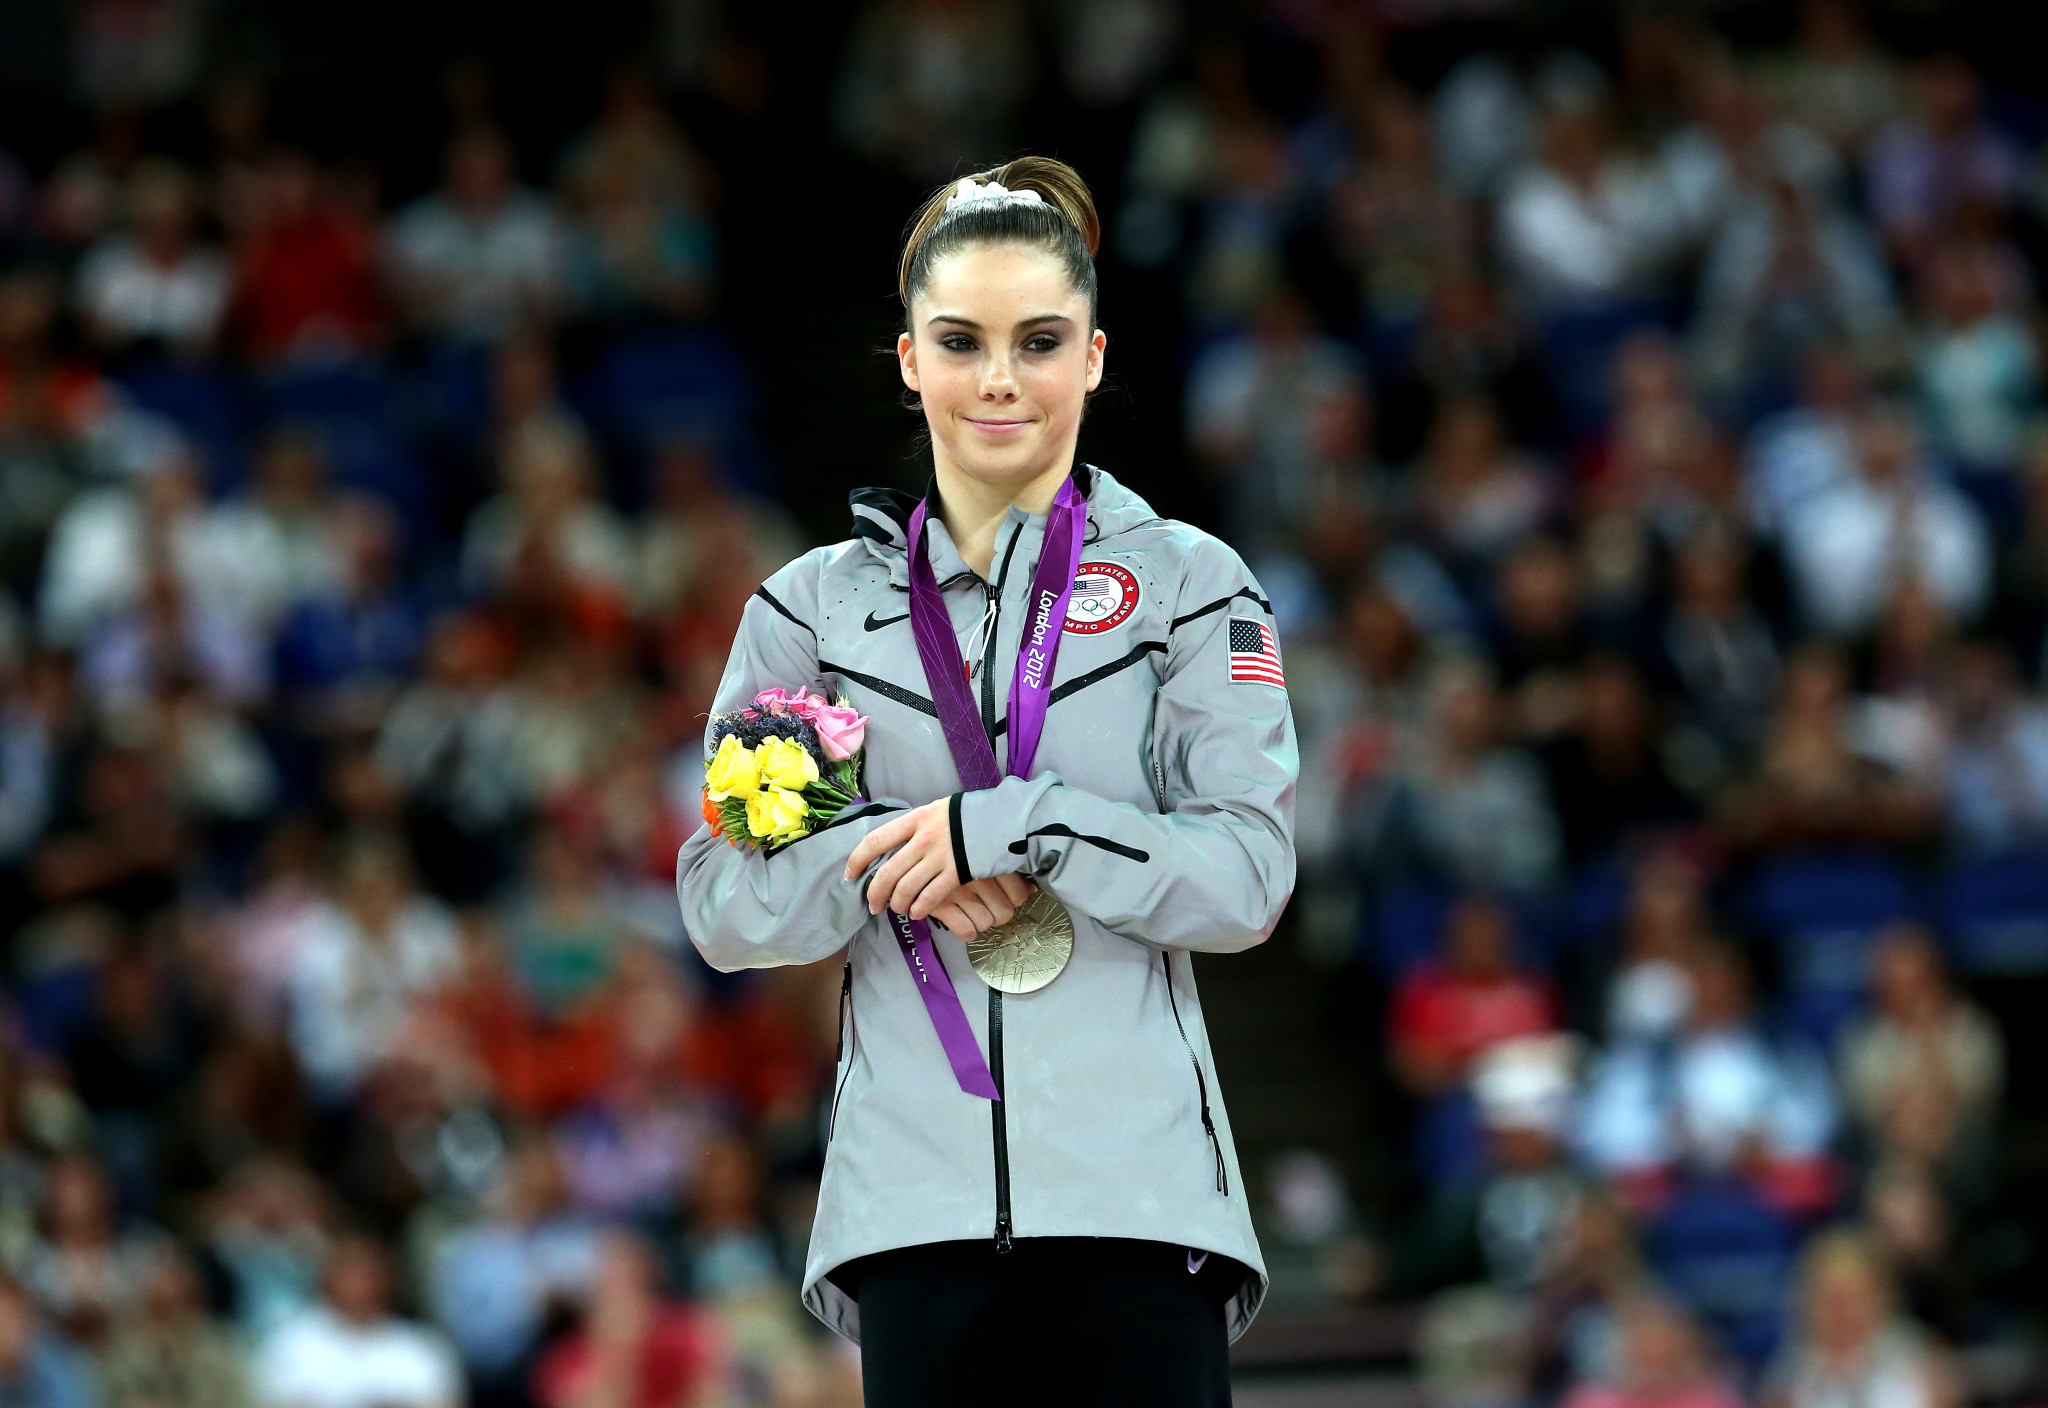 London 2012 champion becomes latest gymnast to make abuse accusations against doctor